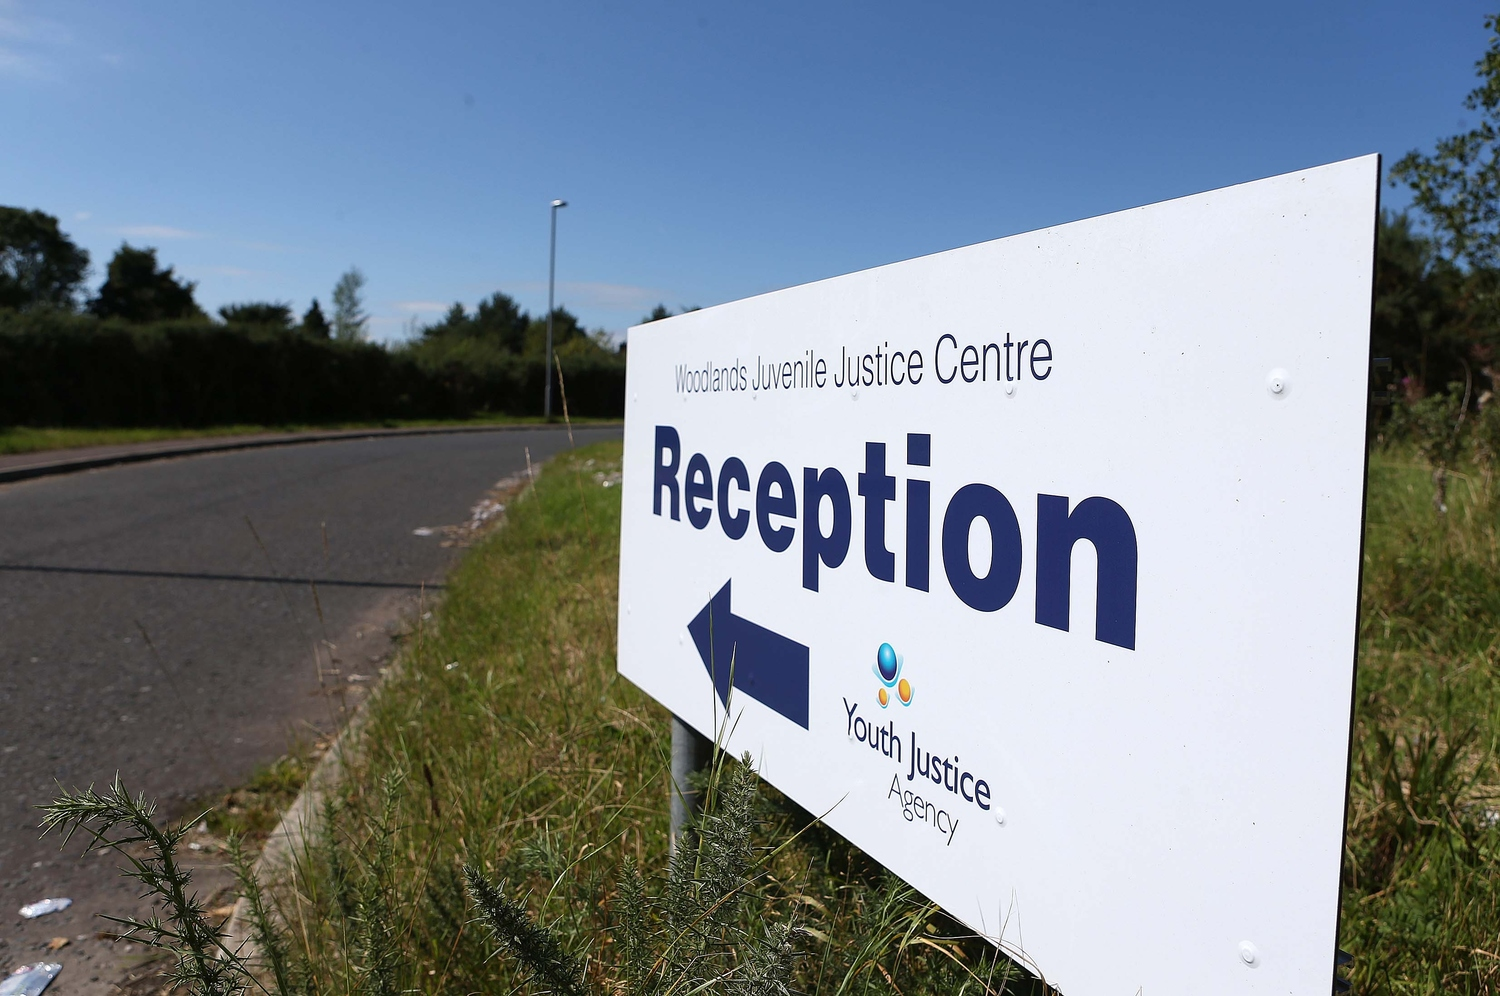 Woodlands Juvenile Justice Centre in Bangor is the only custodial facility for children in Northern Ireland.